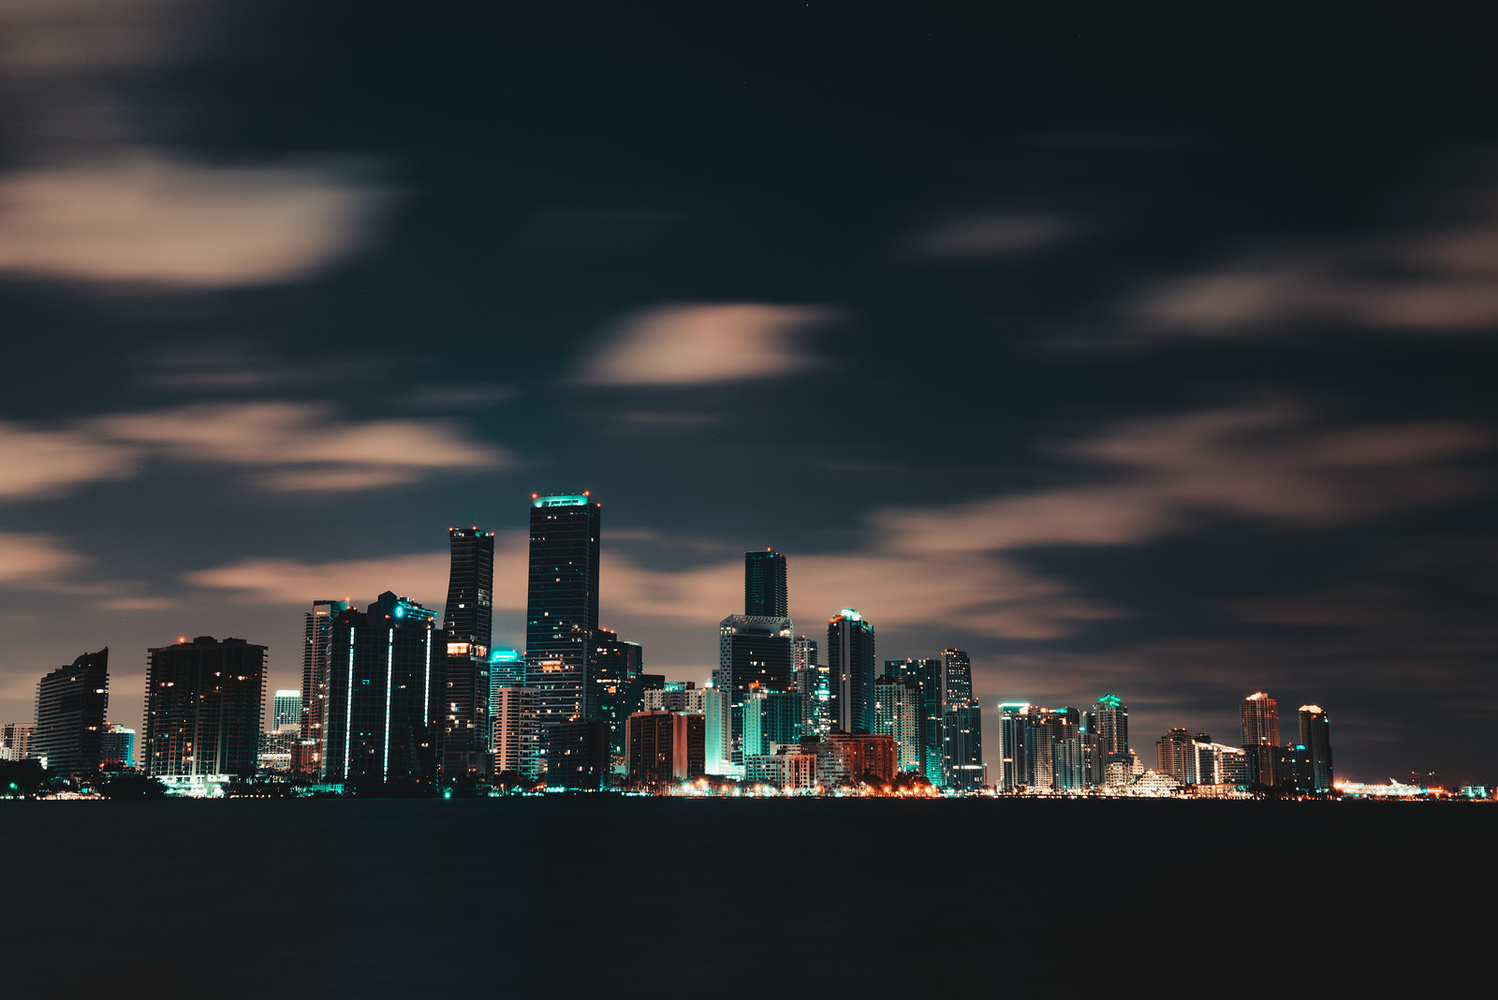 Key Biscayne, Brickell/ Downtown view by Andrew Camel